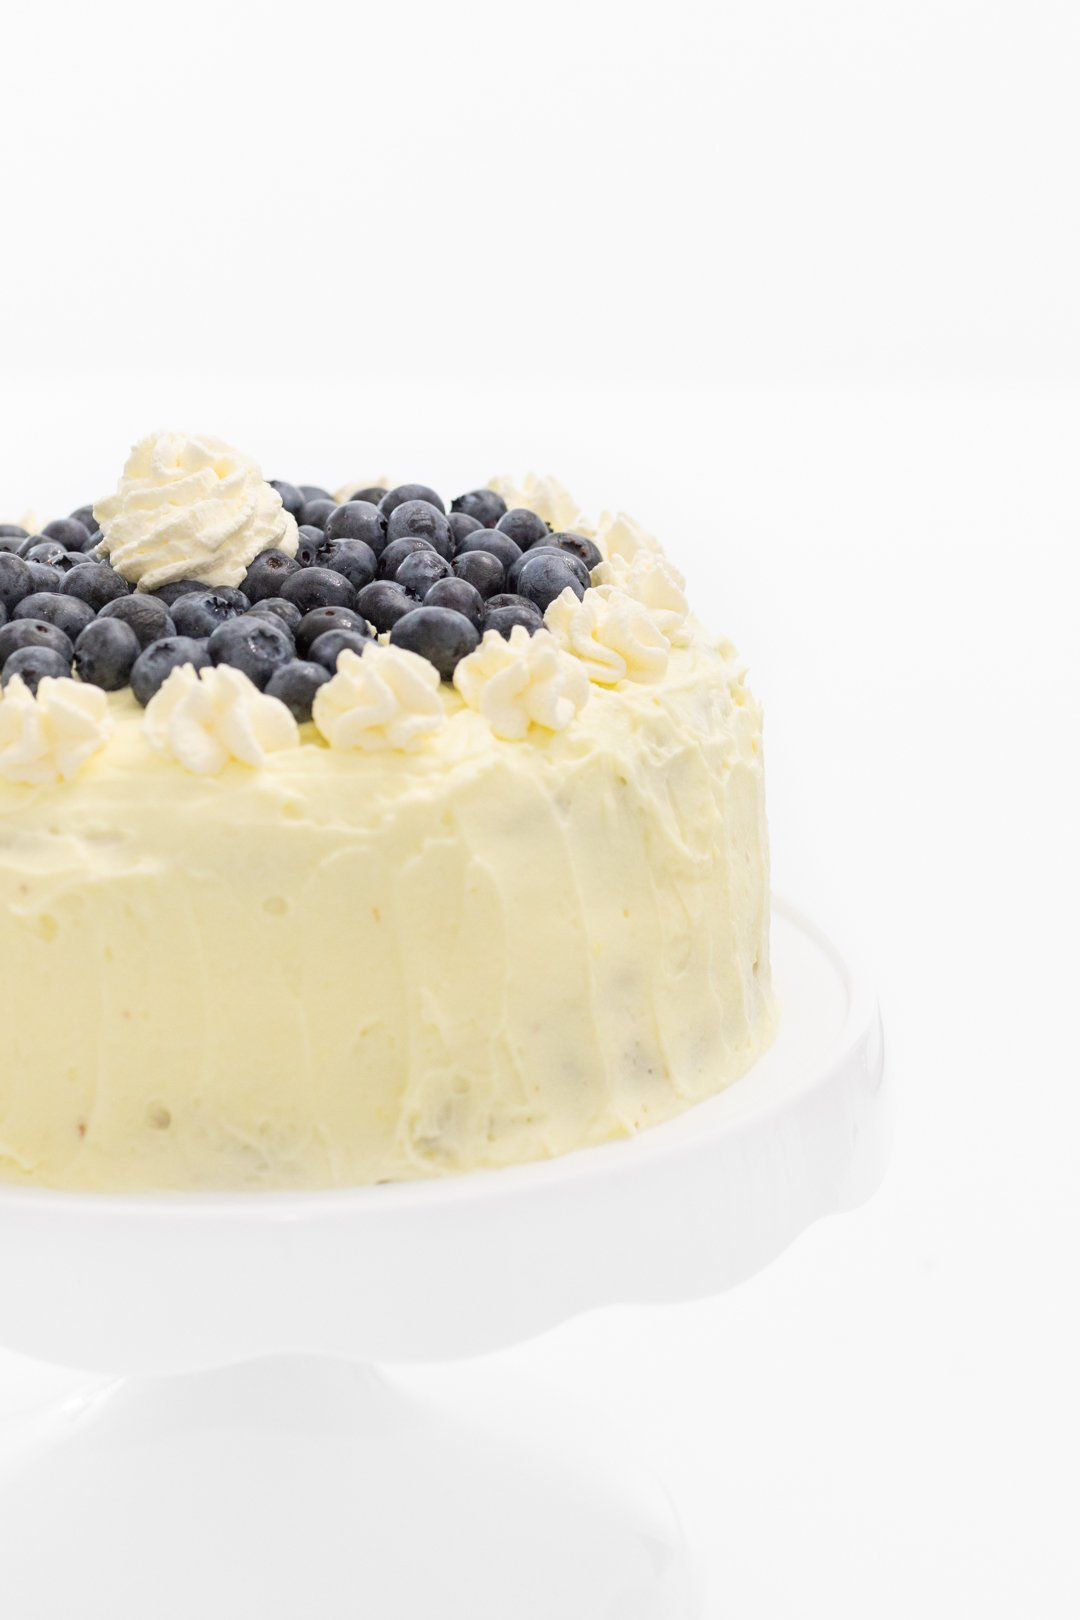 Simple lemon frosted cake with fresh blueberries.